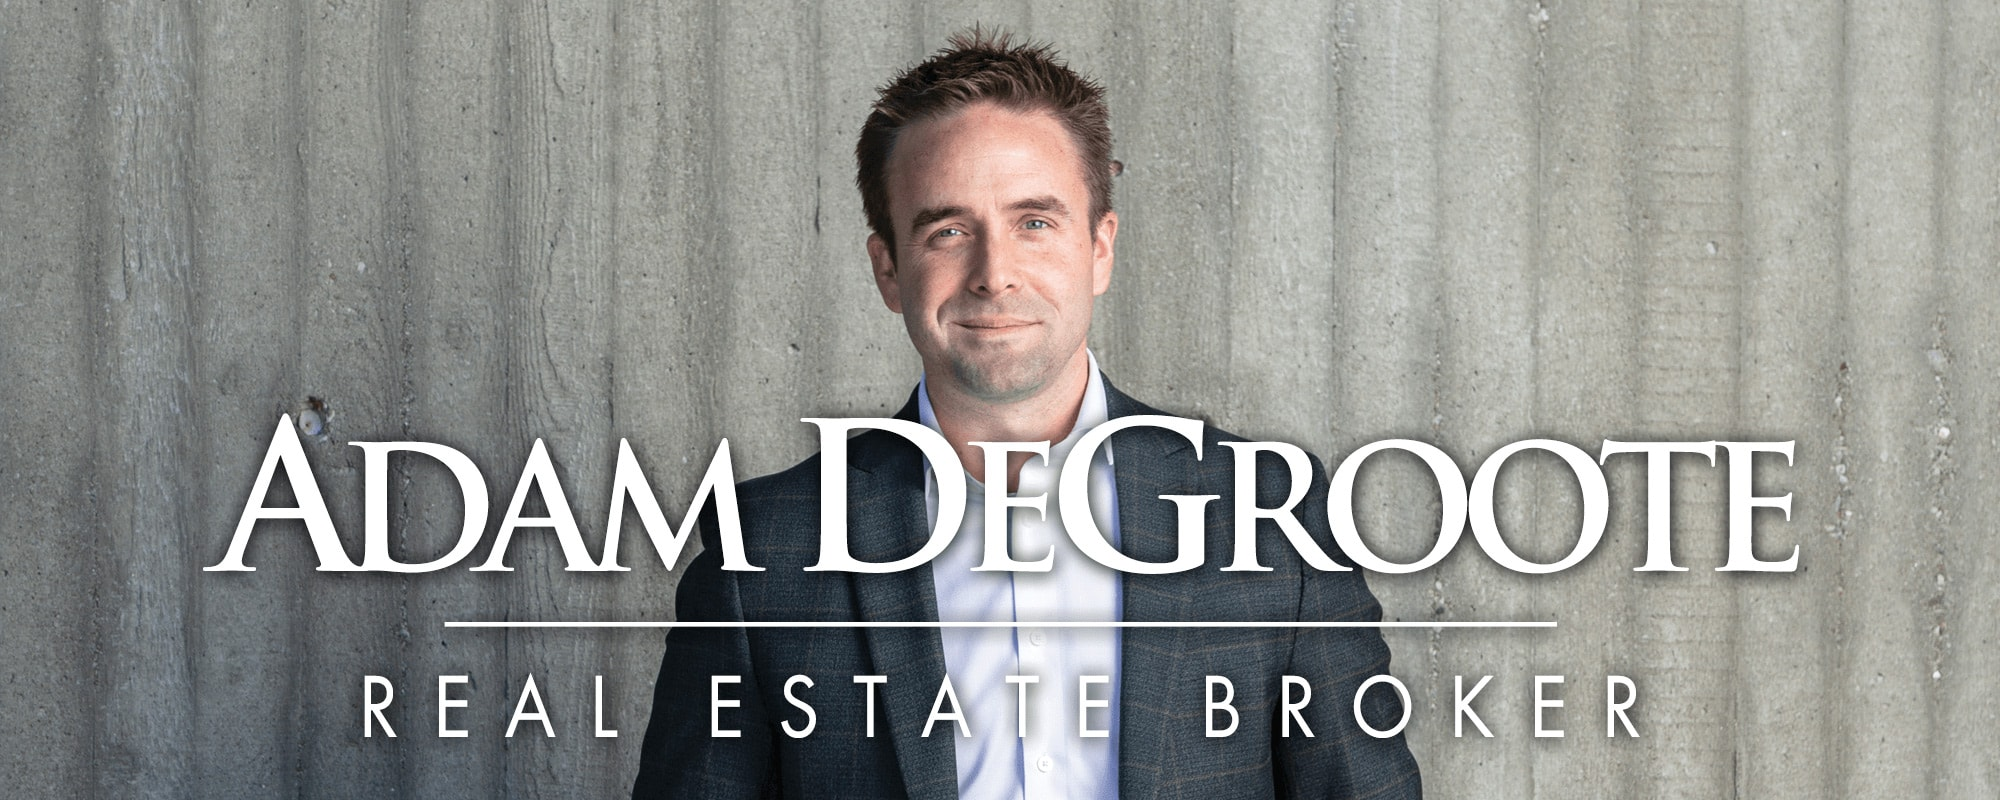 Adam DeGroote Real Estate Broker